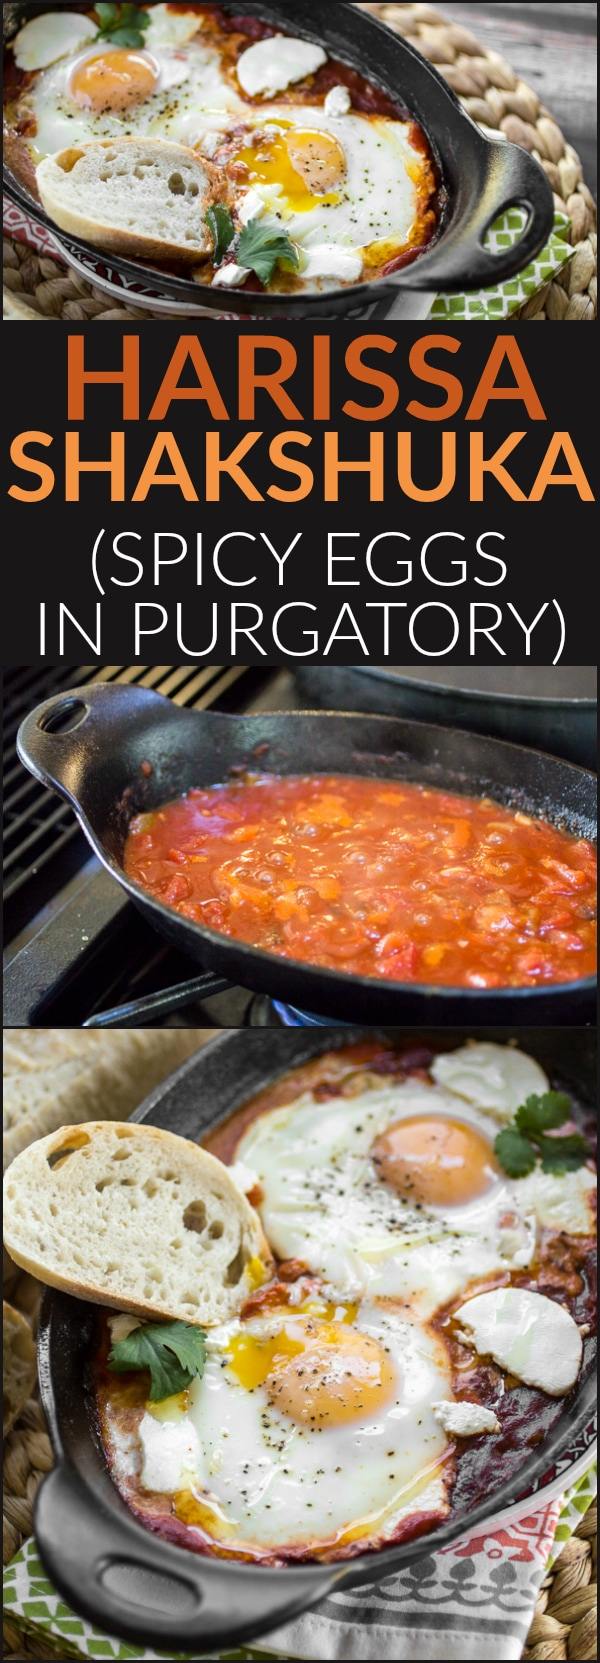 Whether enjoyed first thing in the morning, or as an easy breakfast-for-dinner, this classic dish of eggs simmered in spicy tomato sauce will both delight and satisfy. Be sure to serve your Shakshuka (or, eggs in purgatory) with plenty of crusty bread for dipping!